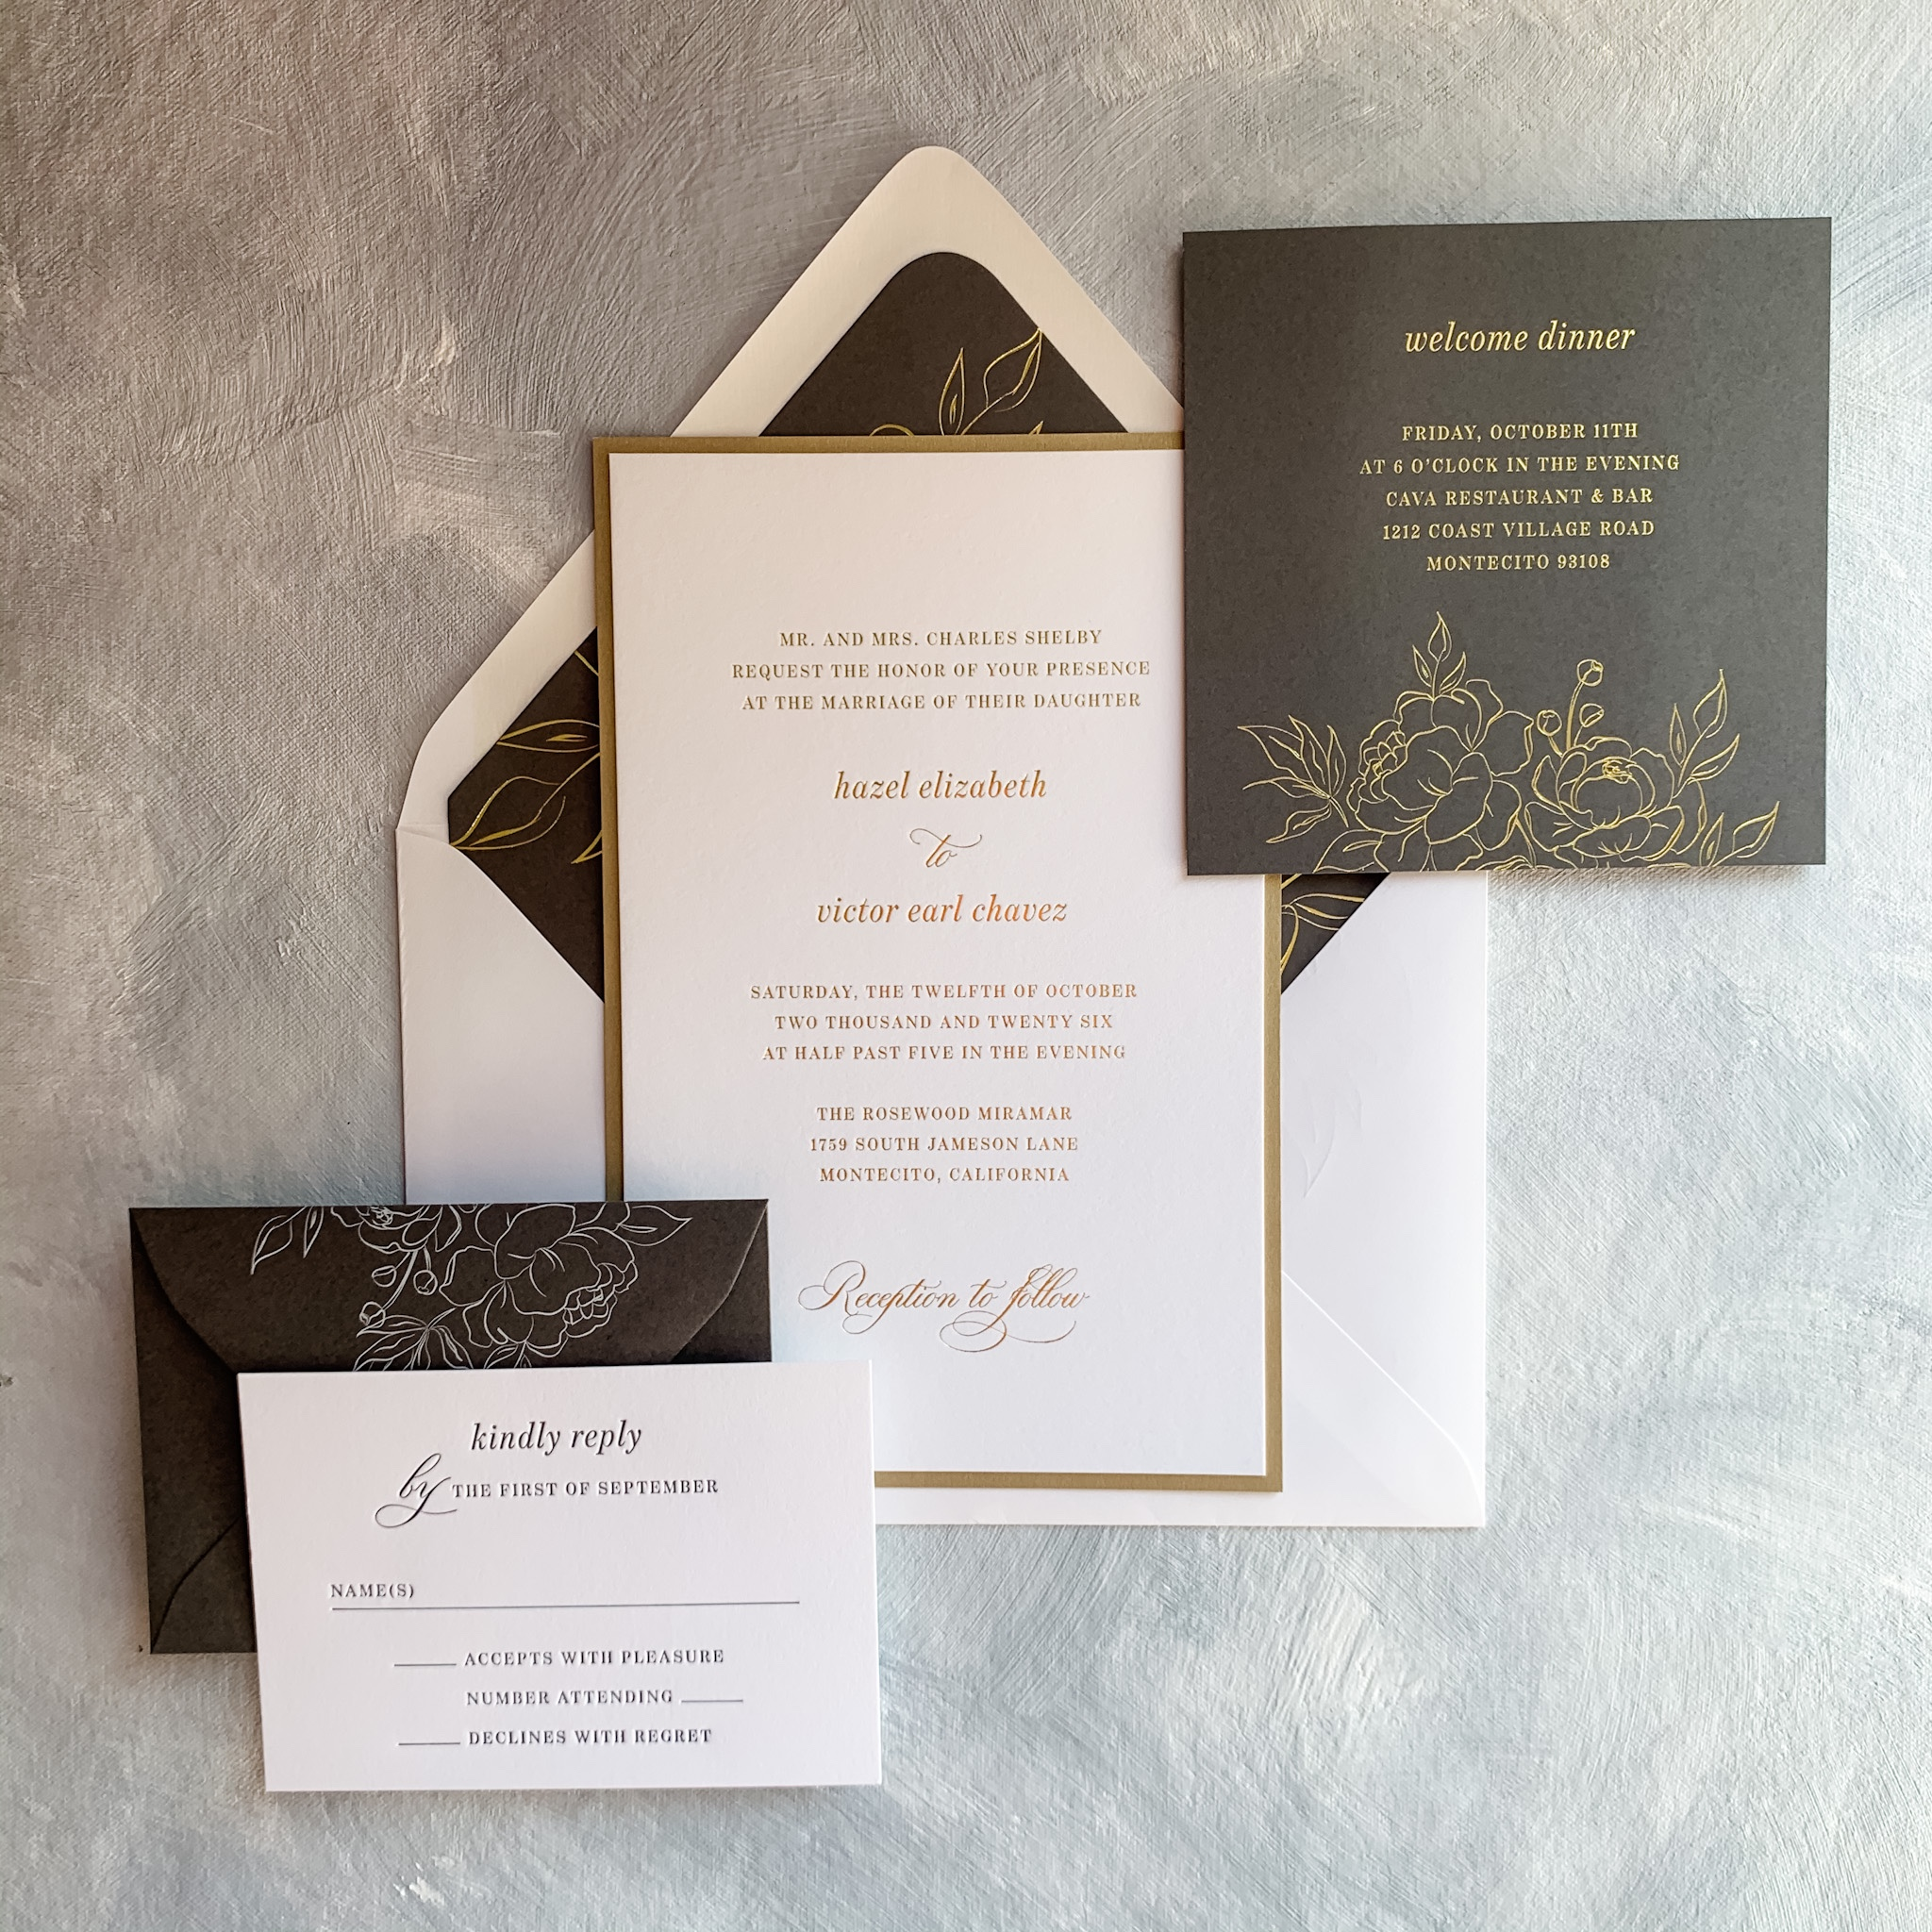 Green and gold foil accents are stunning n this layered wedding invitation available in Northern Virginia at Staccato